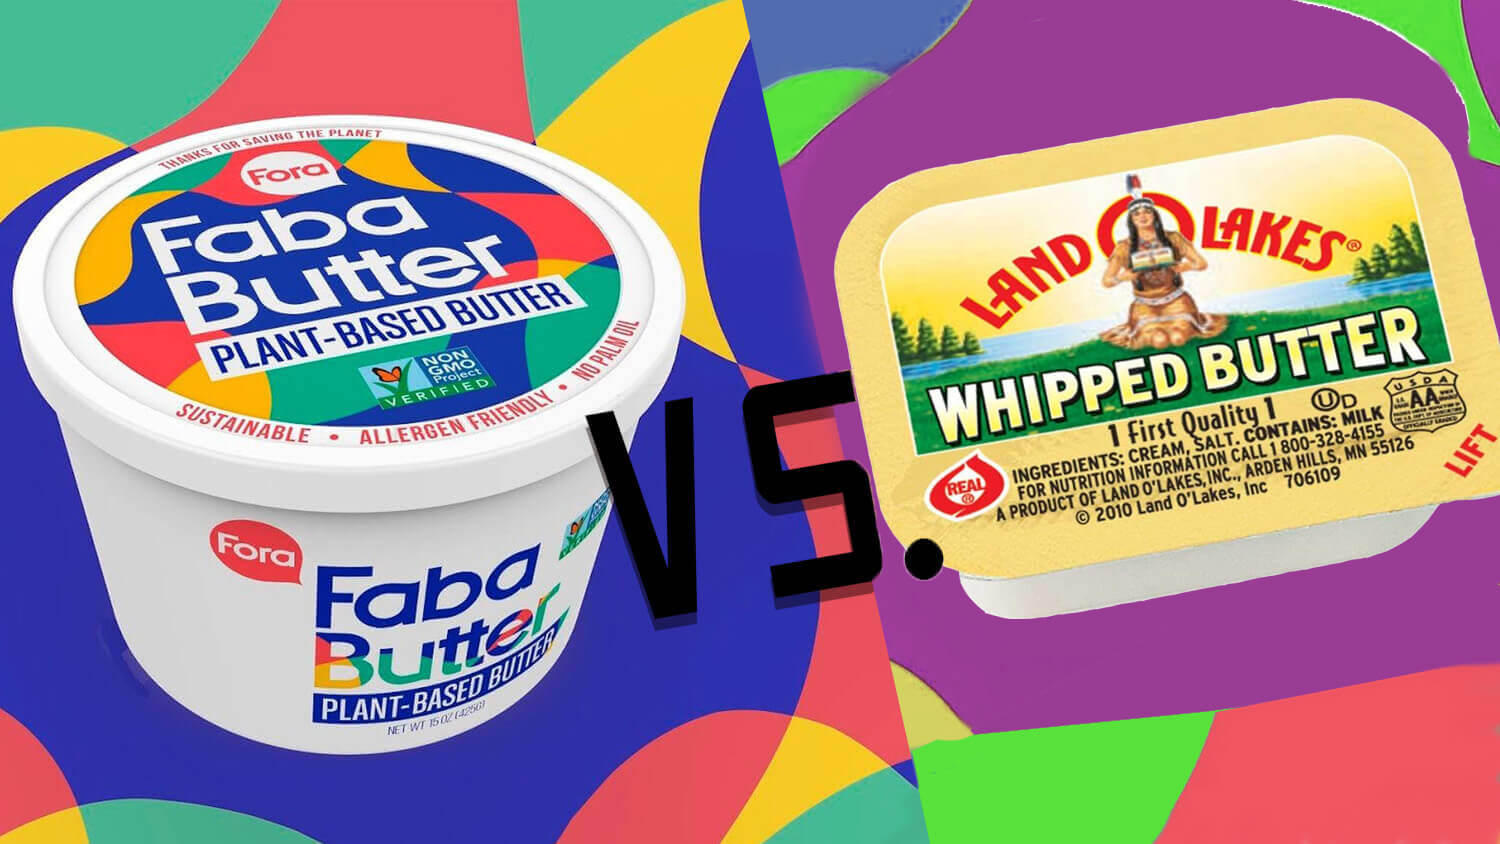 American Butter Institute Urges FDA to Require Label Changes to Buttery Vegan Spreads